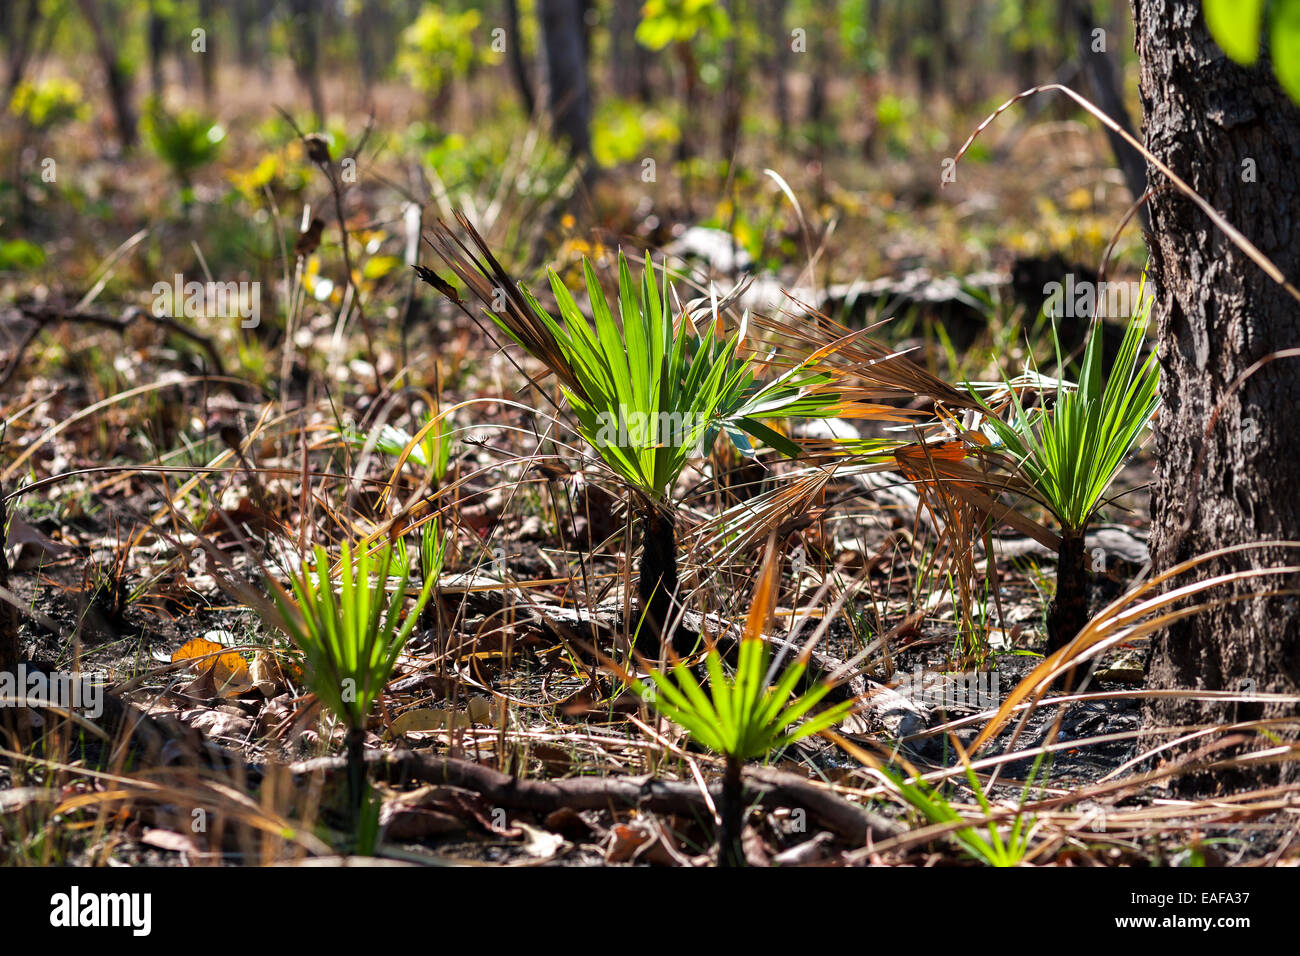 https://c7.alamy.com/comp/EAFA37/regrowth-re-growth-nature-regeneration-after-a-controlled-forest-fire-EAFA37.jpg